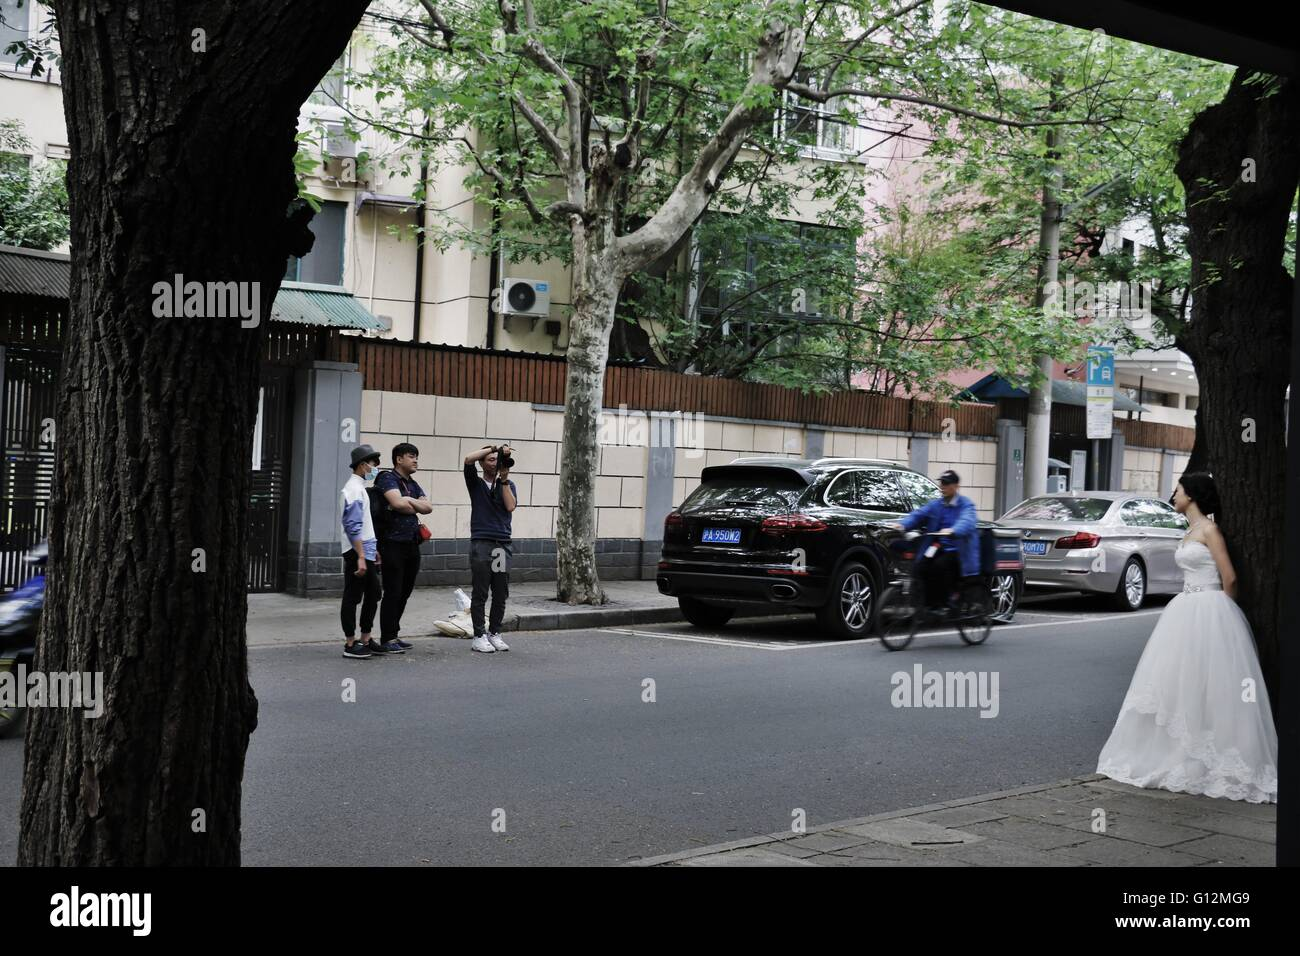 Cameraman capturing the bride in a busy street in French concession, Shanghai, China, 2016. - Stock Image